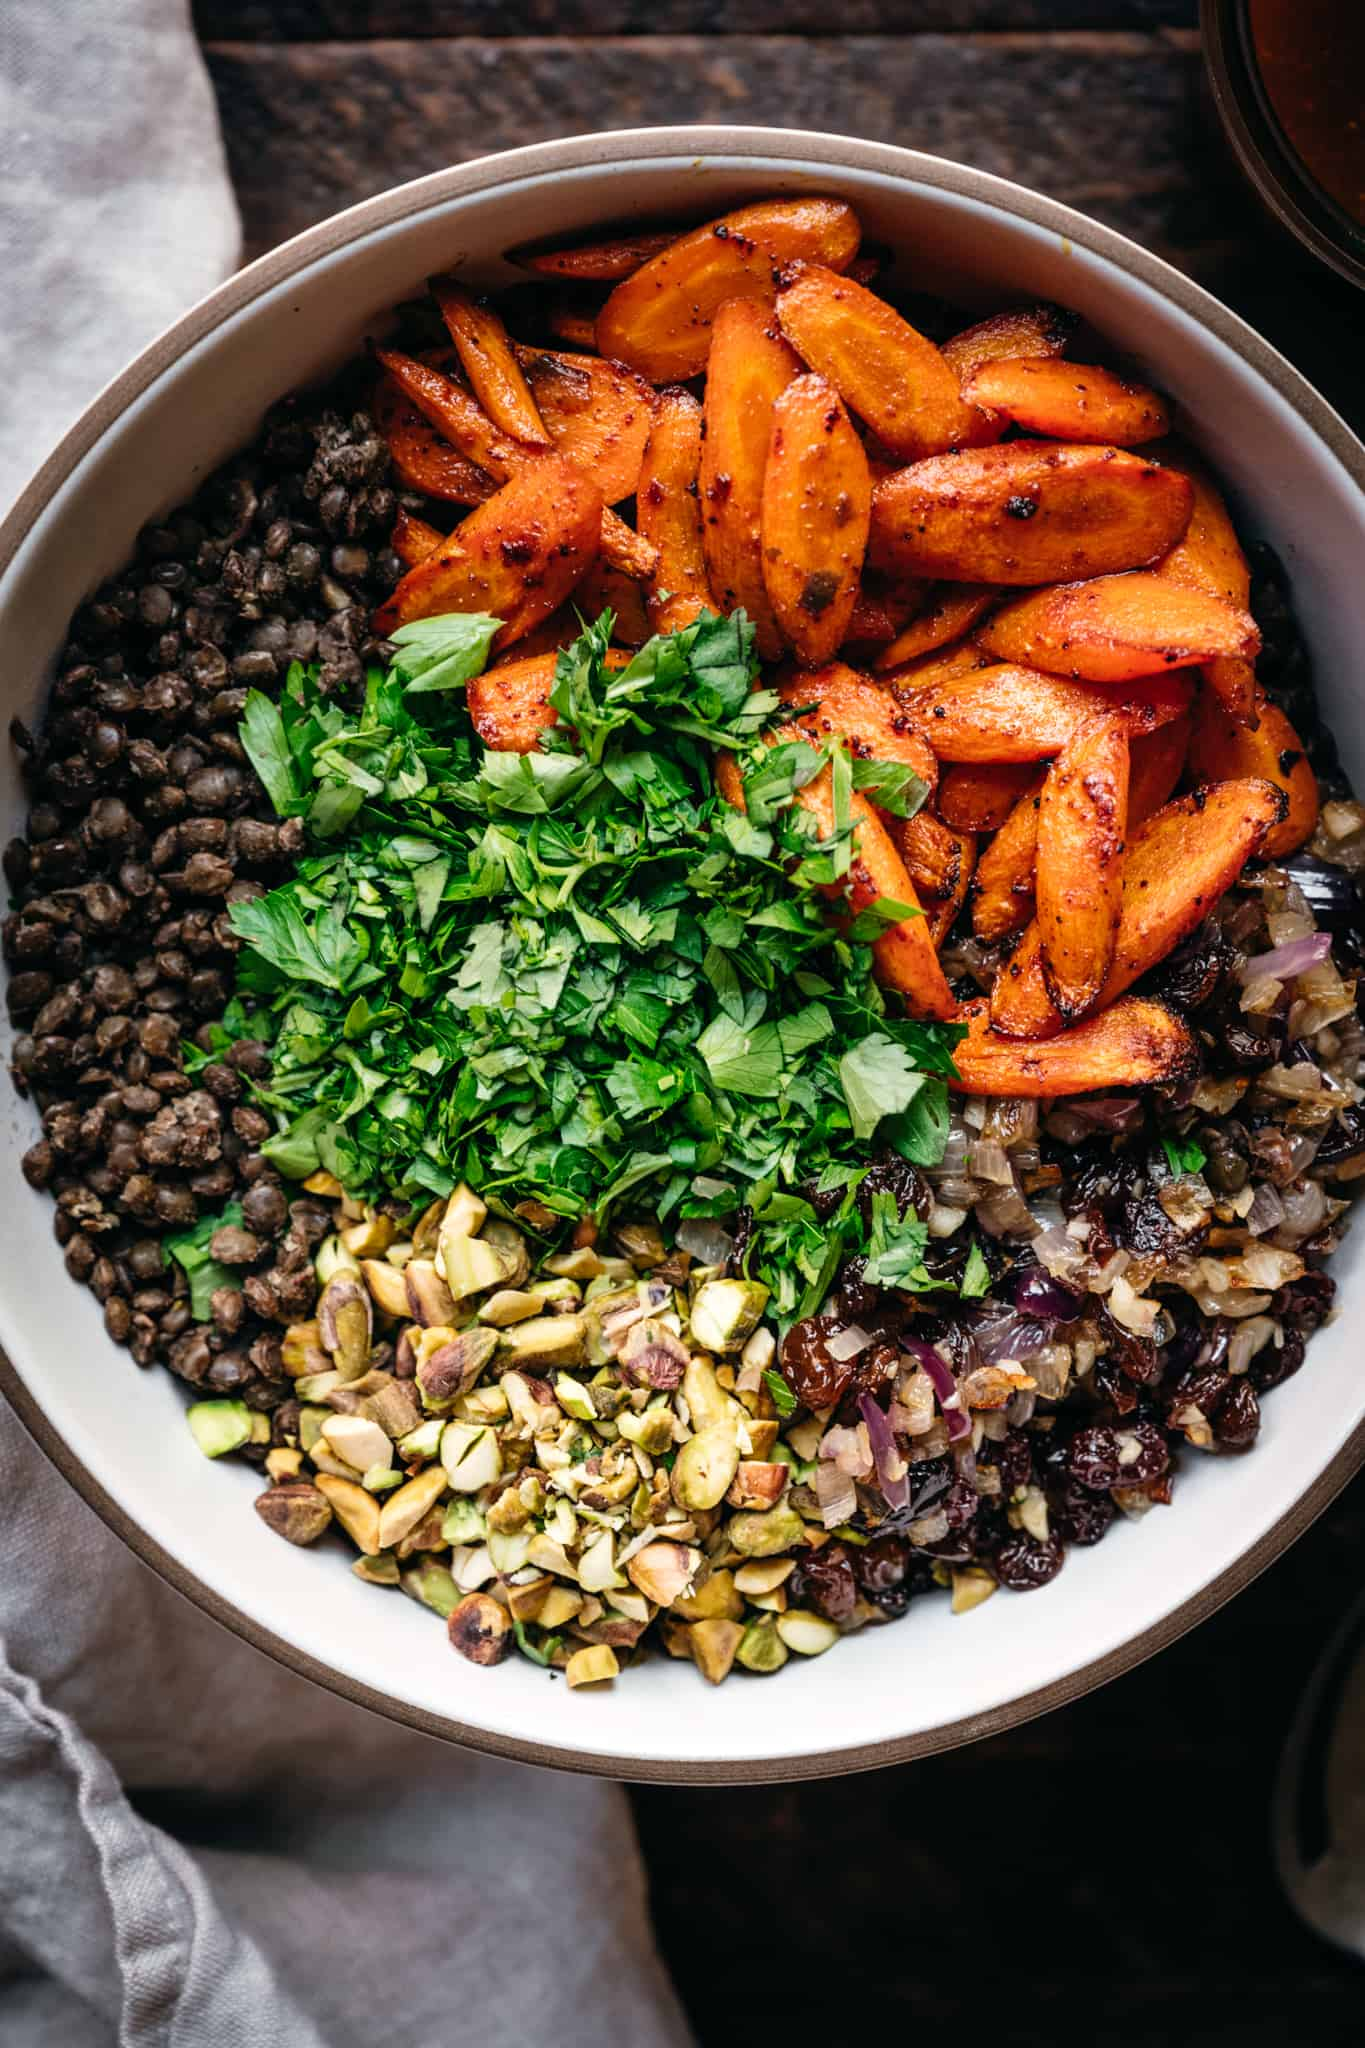 overhead view of ingredients in white bowl to make vegan french lentil salad with moroccan dressing